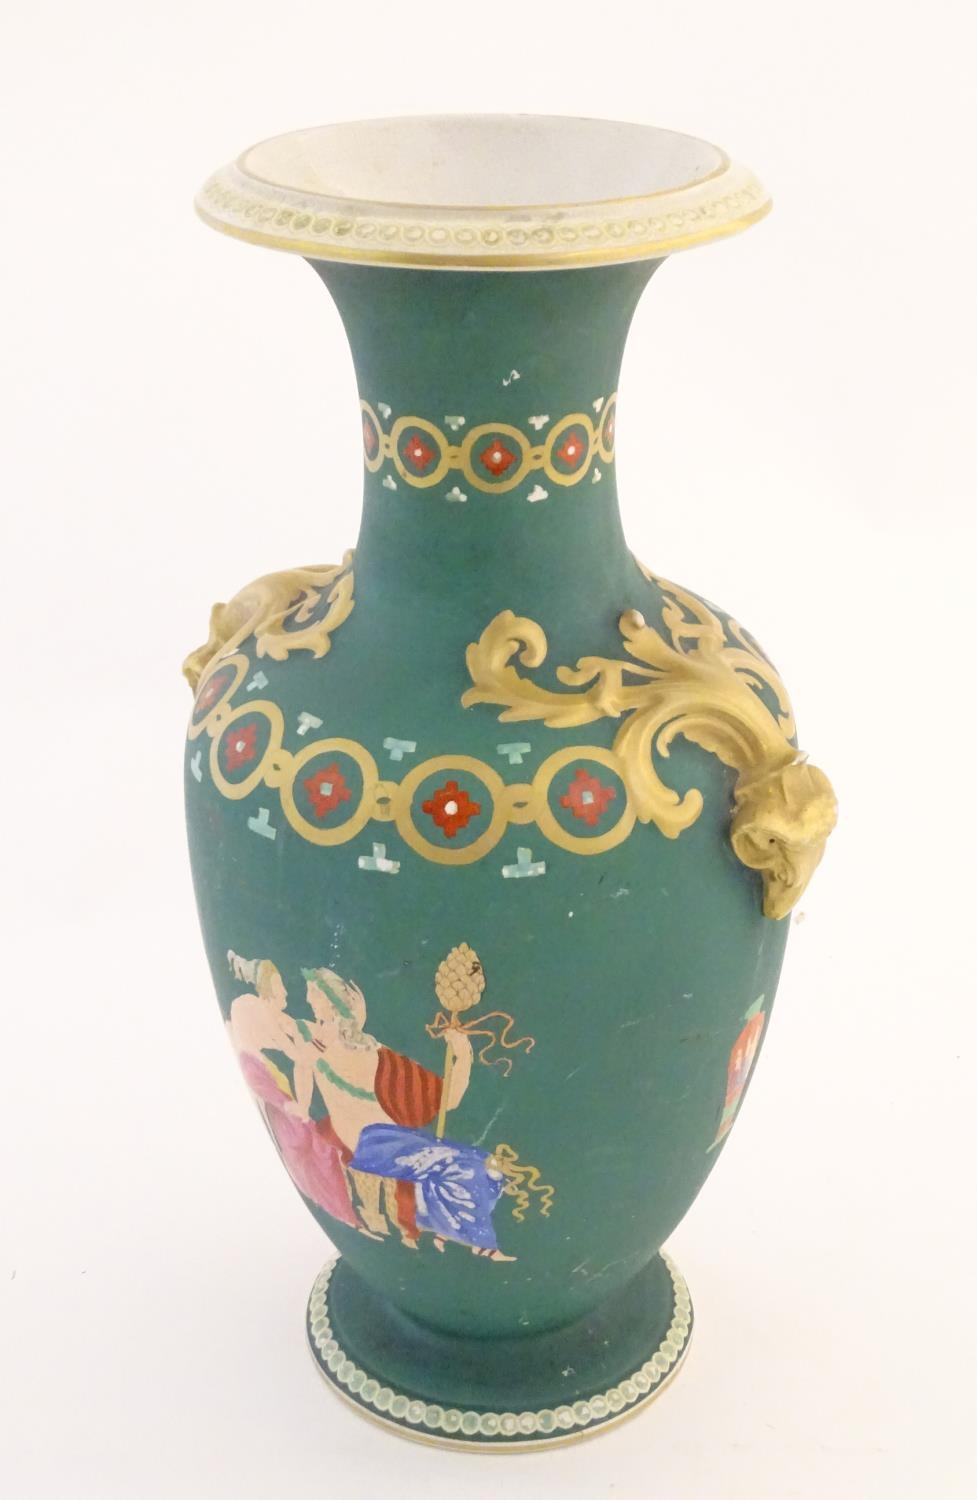 A Prattware baluster vase with Classical decoration depicting a Roman gladiator and chariot etc. - Image 4 of 12